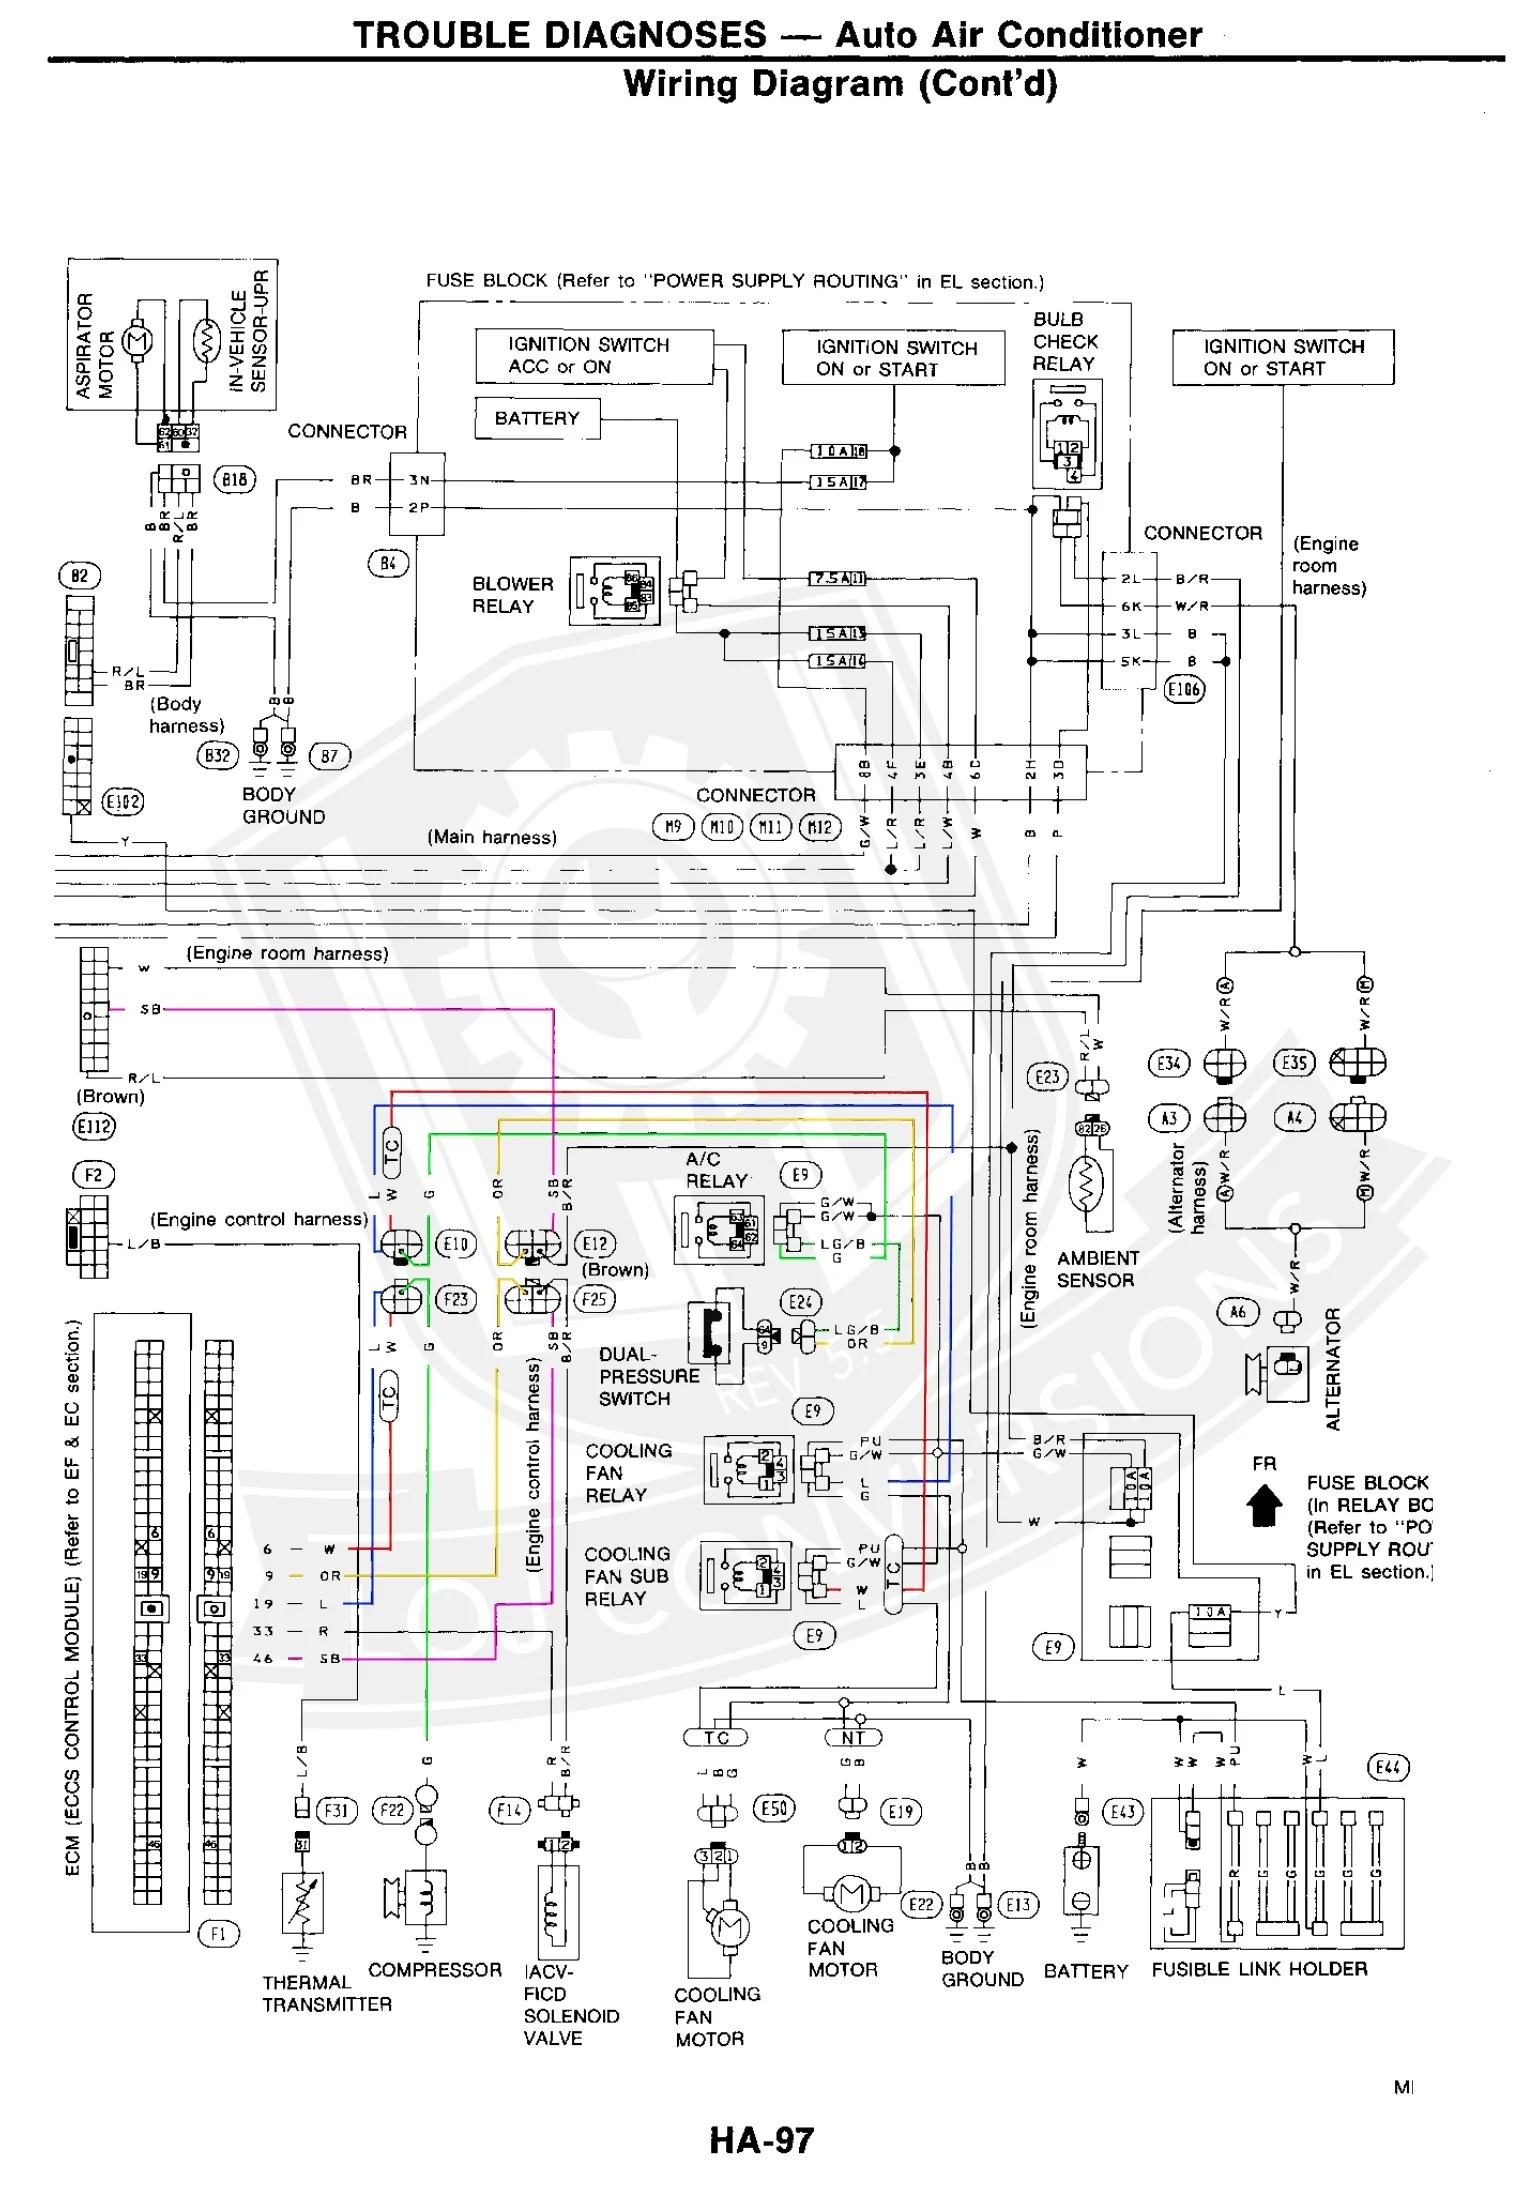 cooling fan relay wiring diagram for ls3 wiring library cooling fan relay wiring diagram for ls3 [ 1515 x 2194 Pixel ]